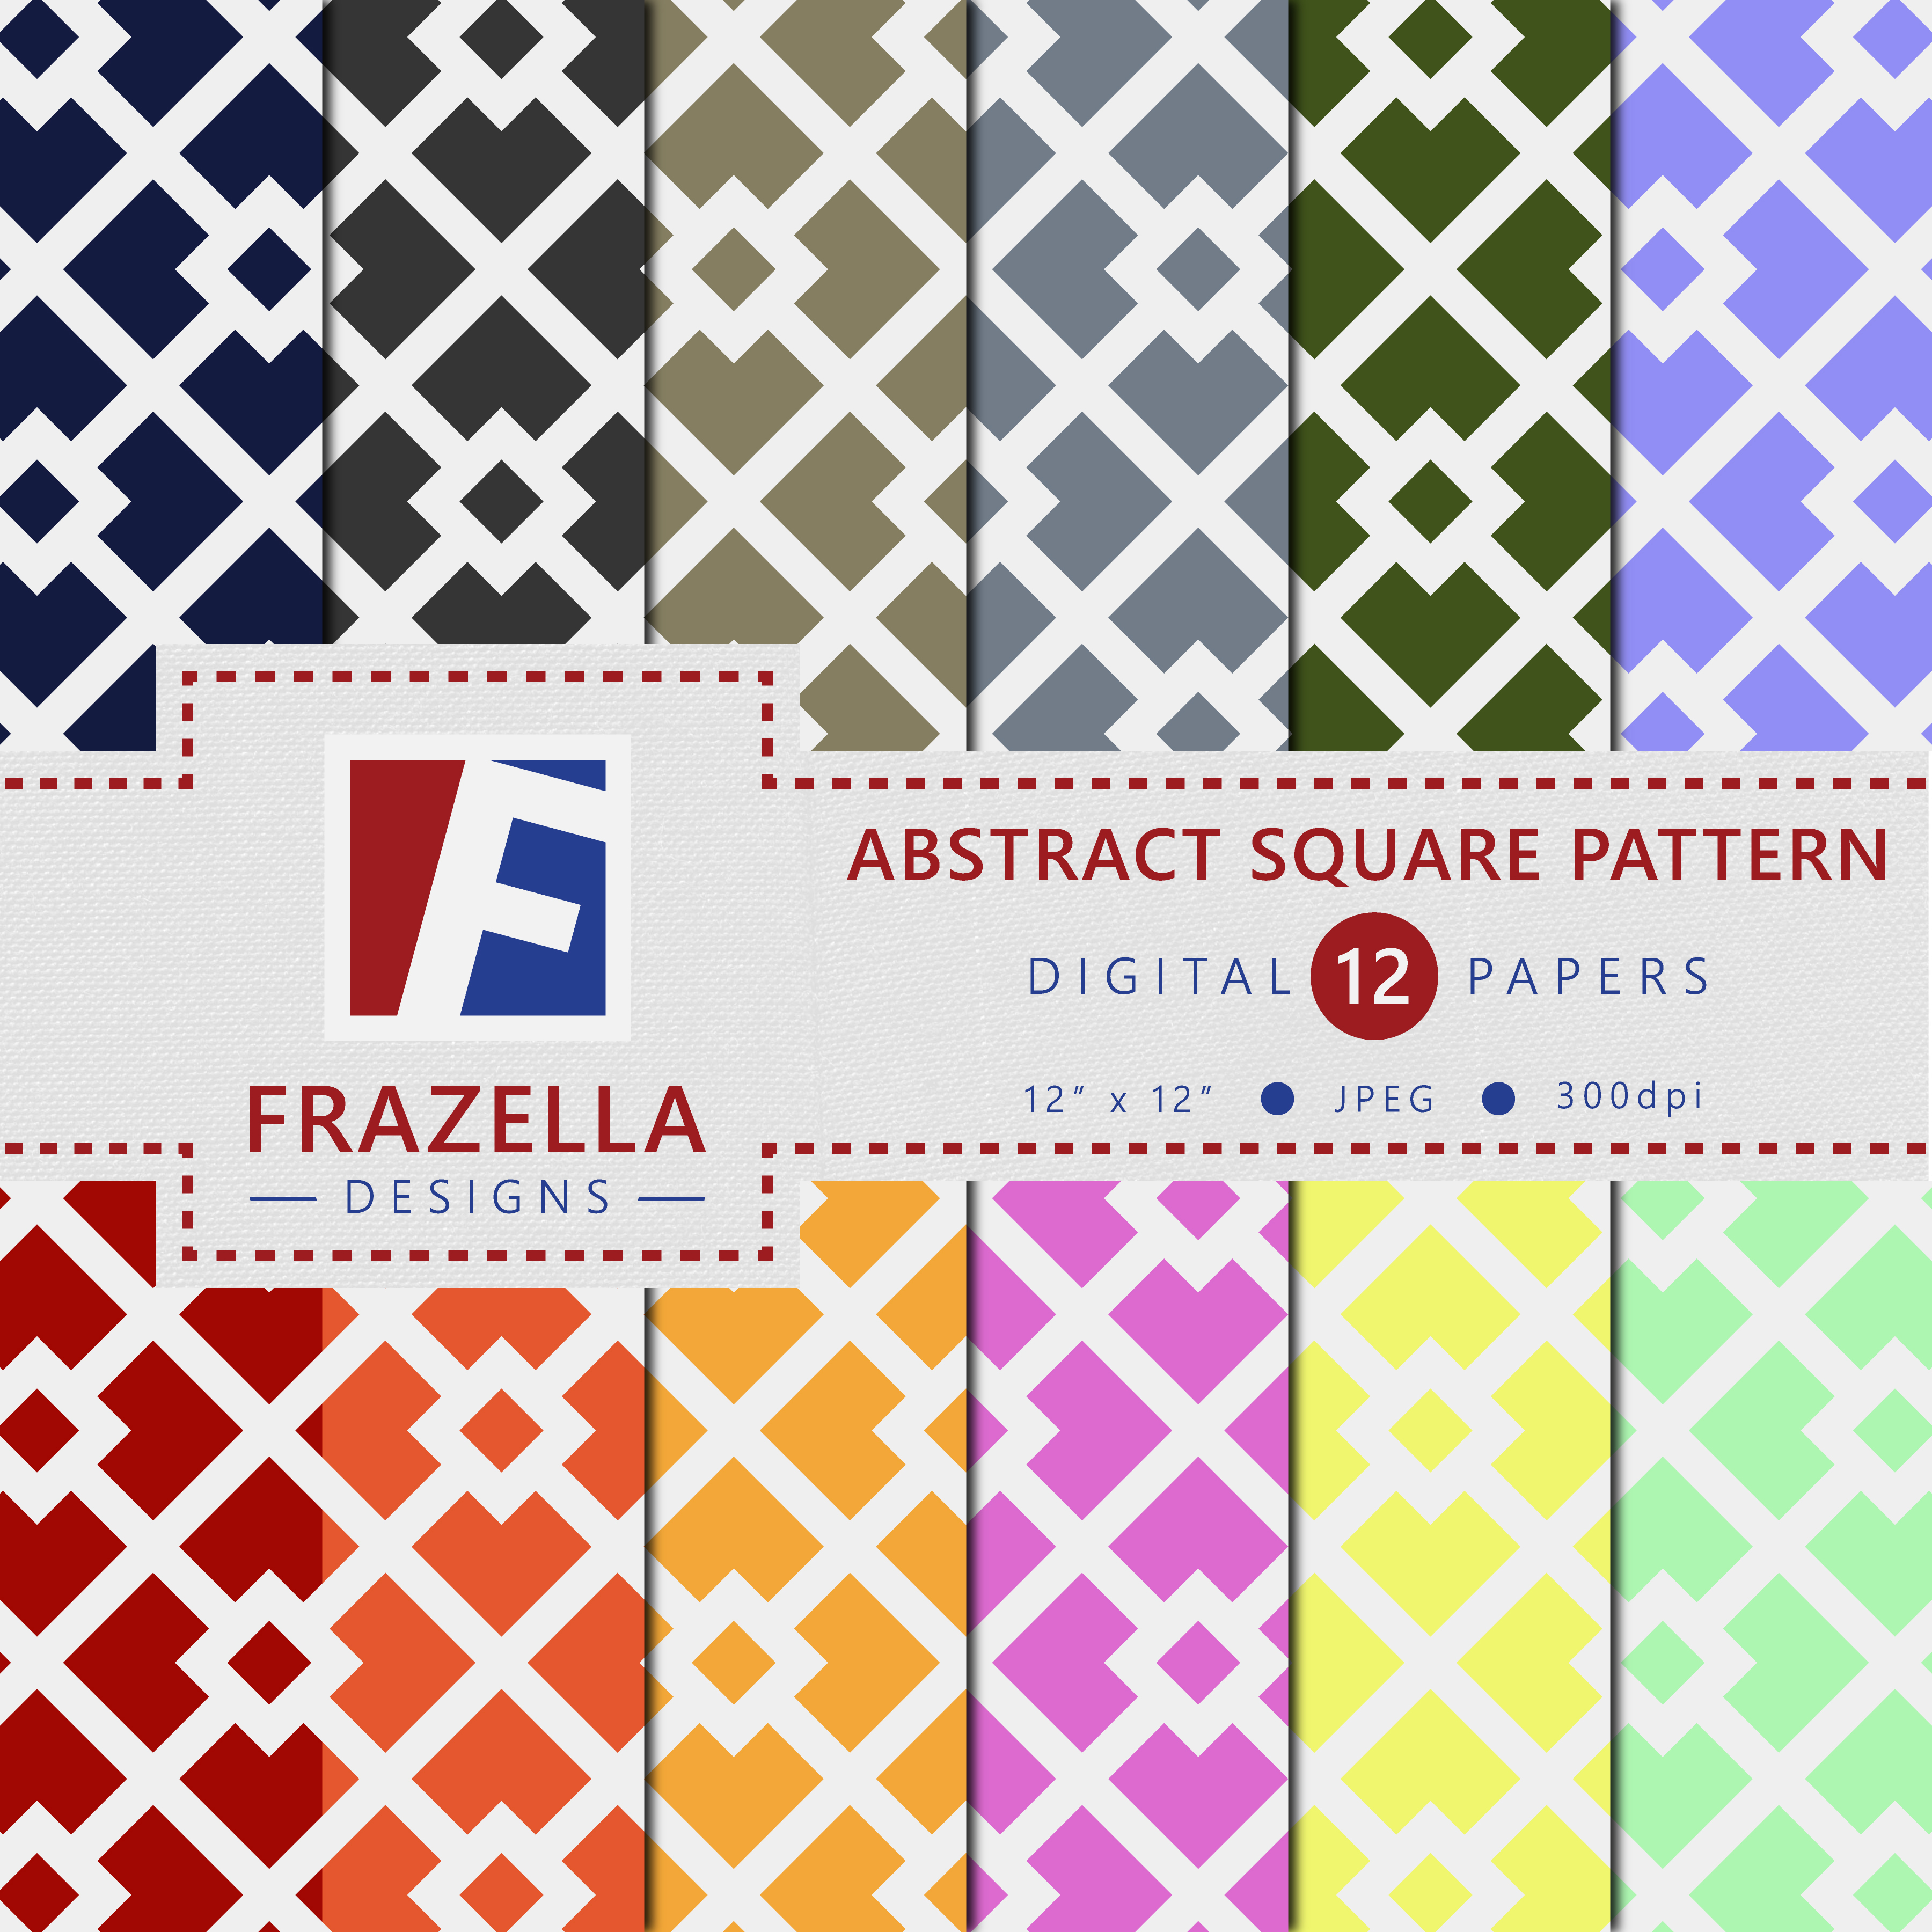 Download Free Abstract Square Pattern Digital Paper Collection Graphic By for Cricut Explore, Silhouette and other cutting machines.